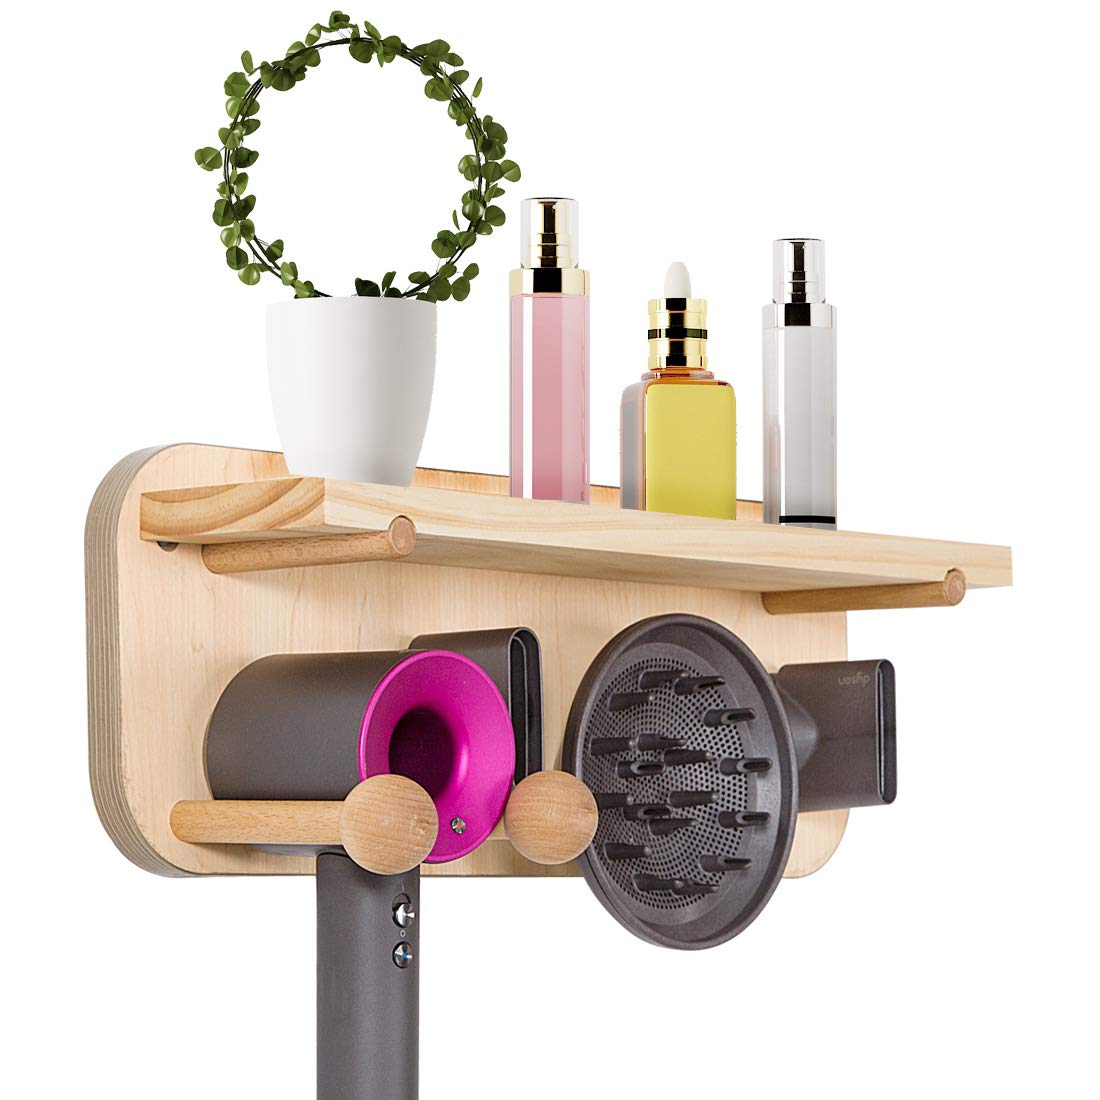 Voglee Dyson Hairdryer Holder with Storage Function, Wooden Hair Dryer Organizer Wall Mounted for Dyson Supersonic Hair Dryer, Diffuser and Two Nozzles